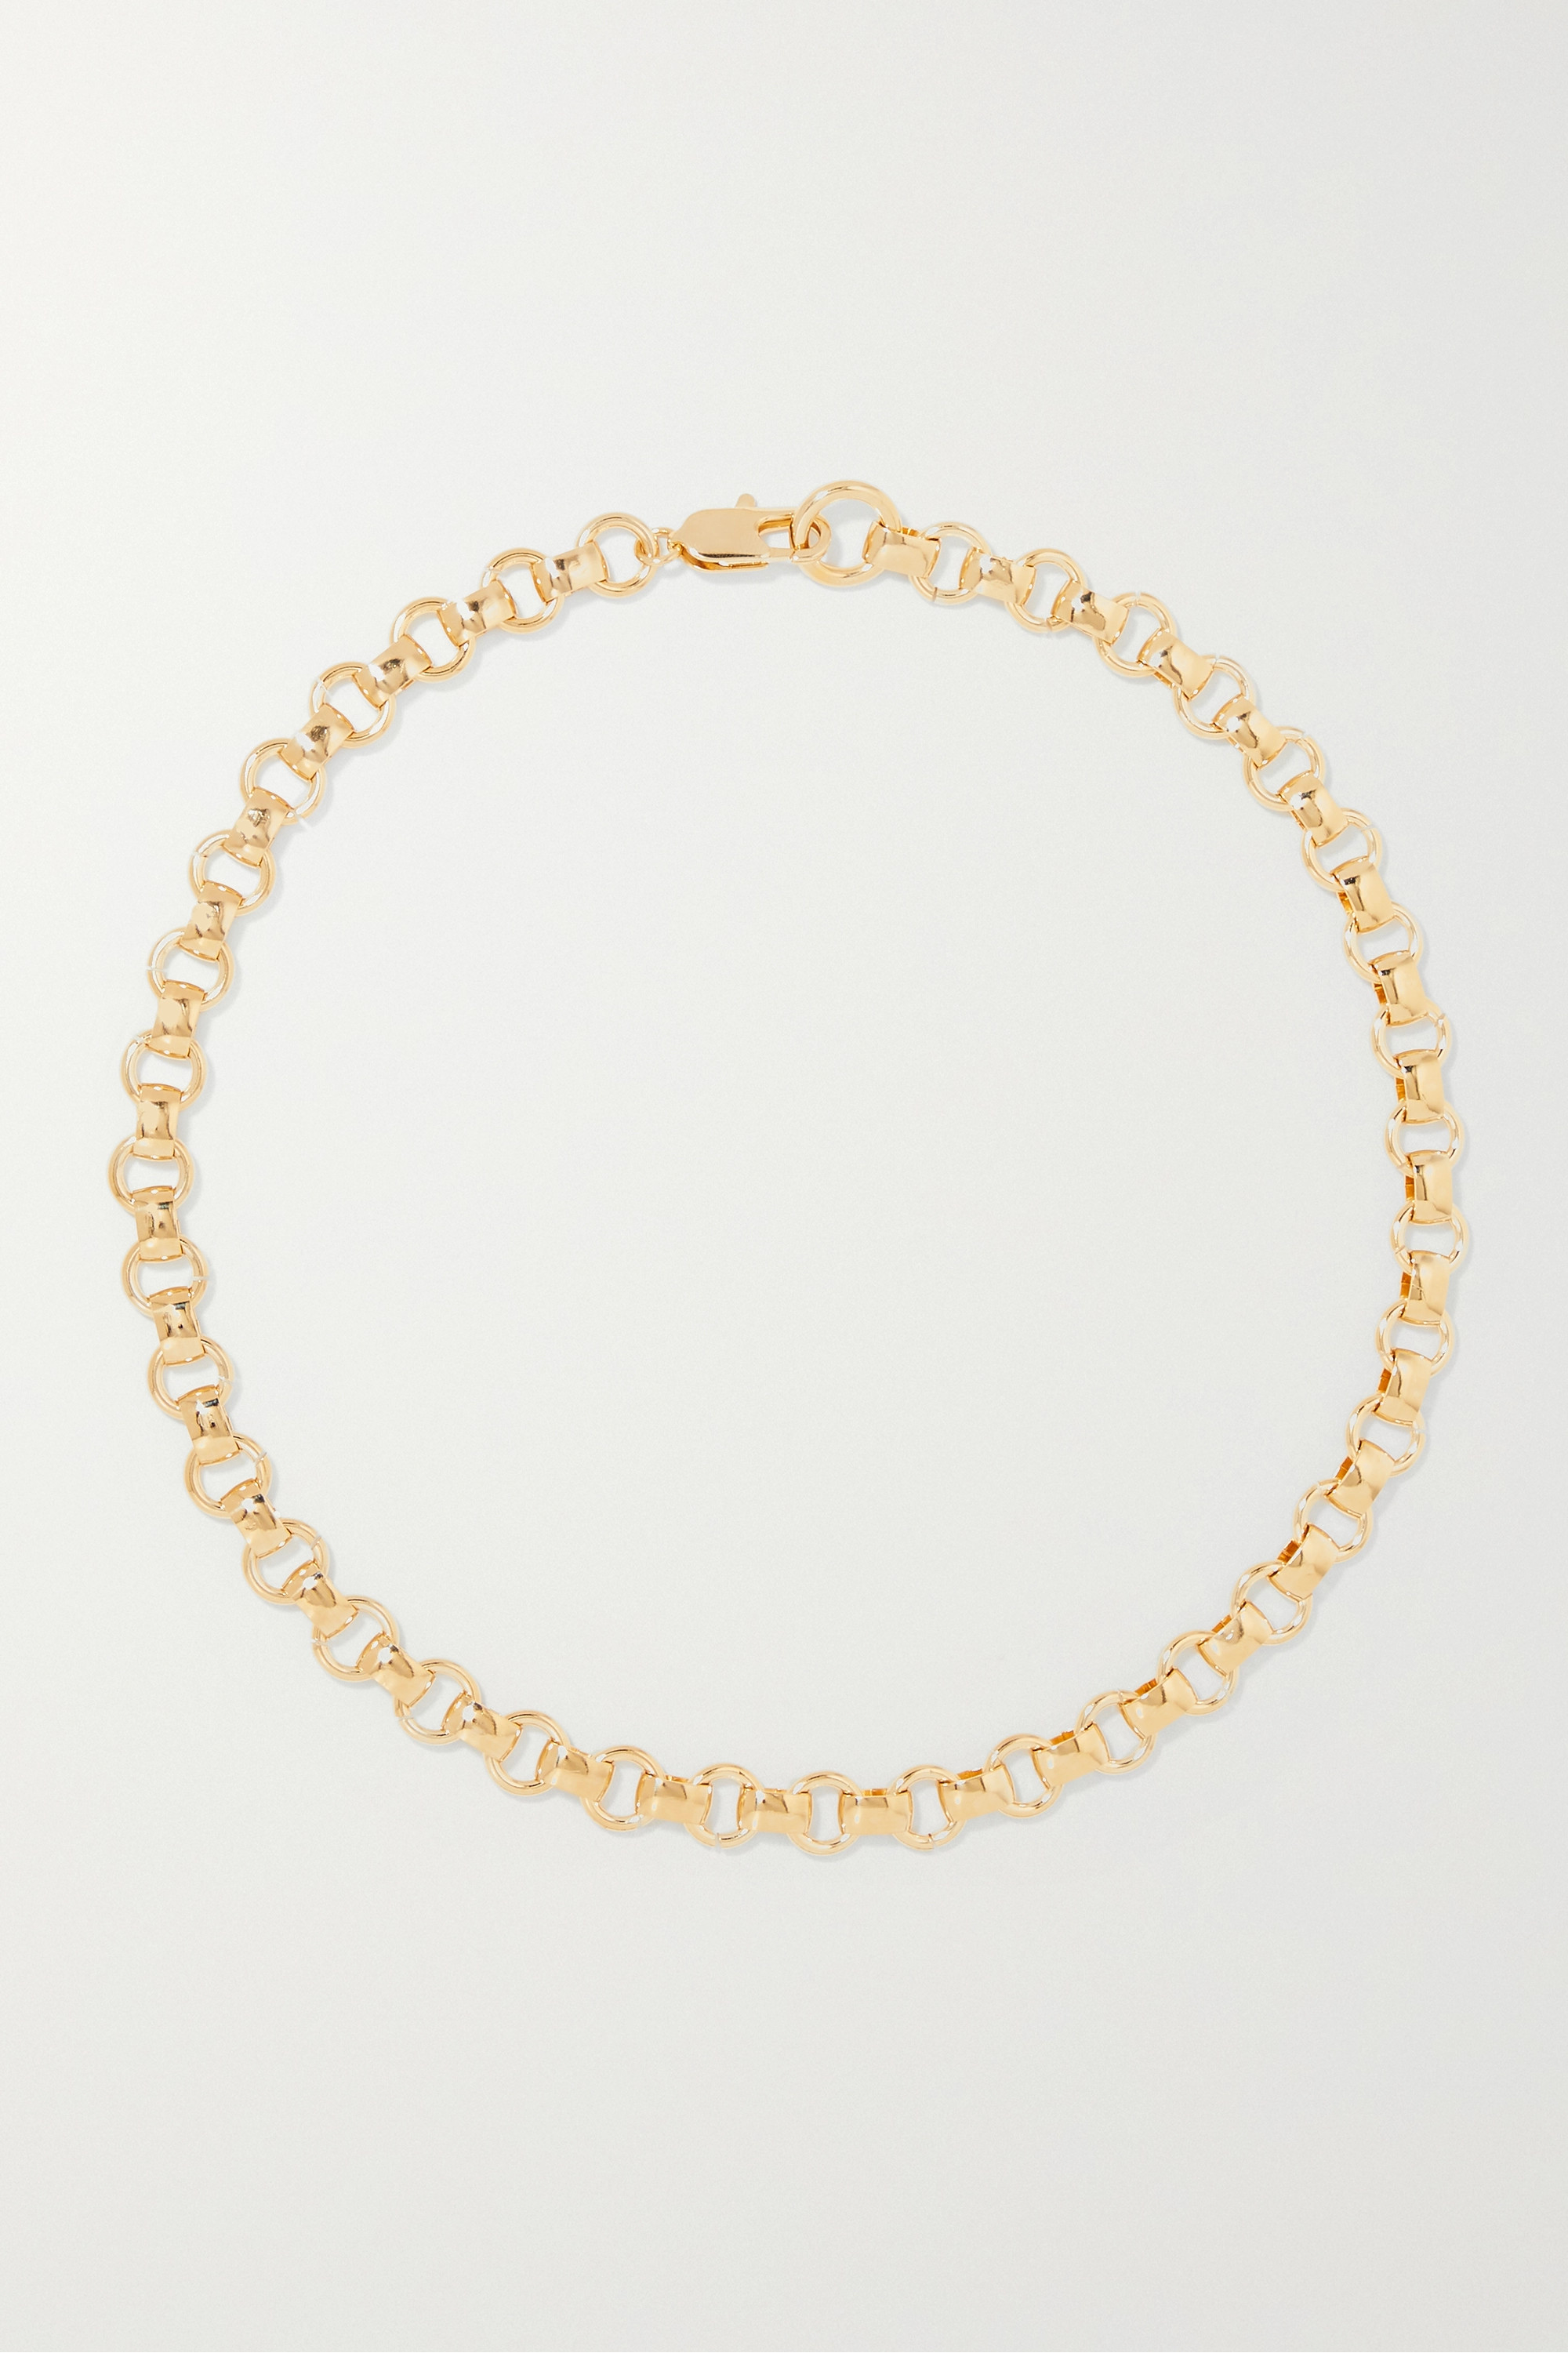 Laura Lombardi + NET SUSTAIN Franca gold-plated necklace